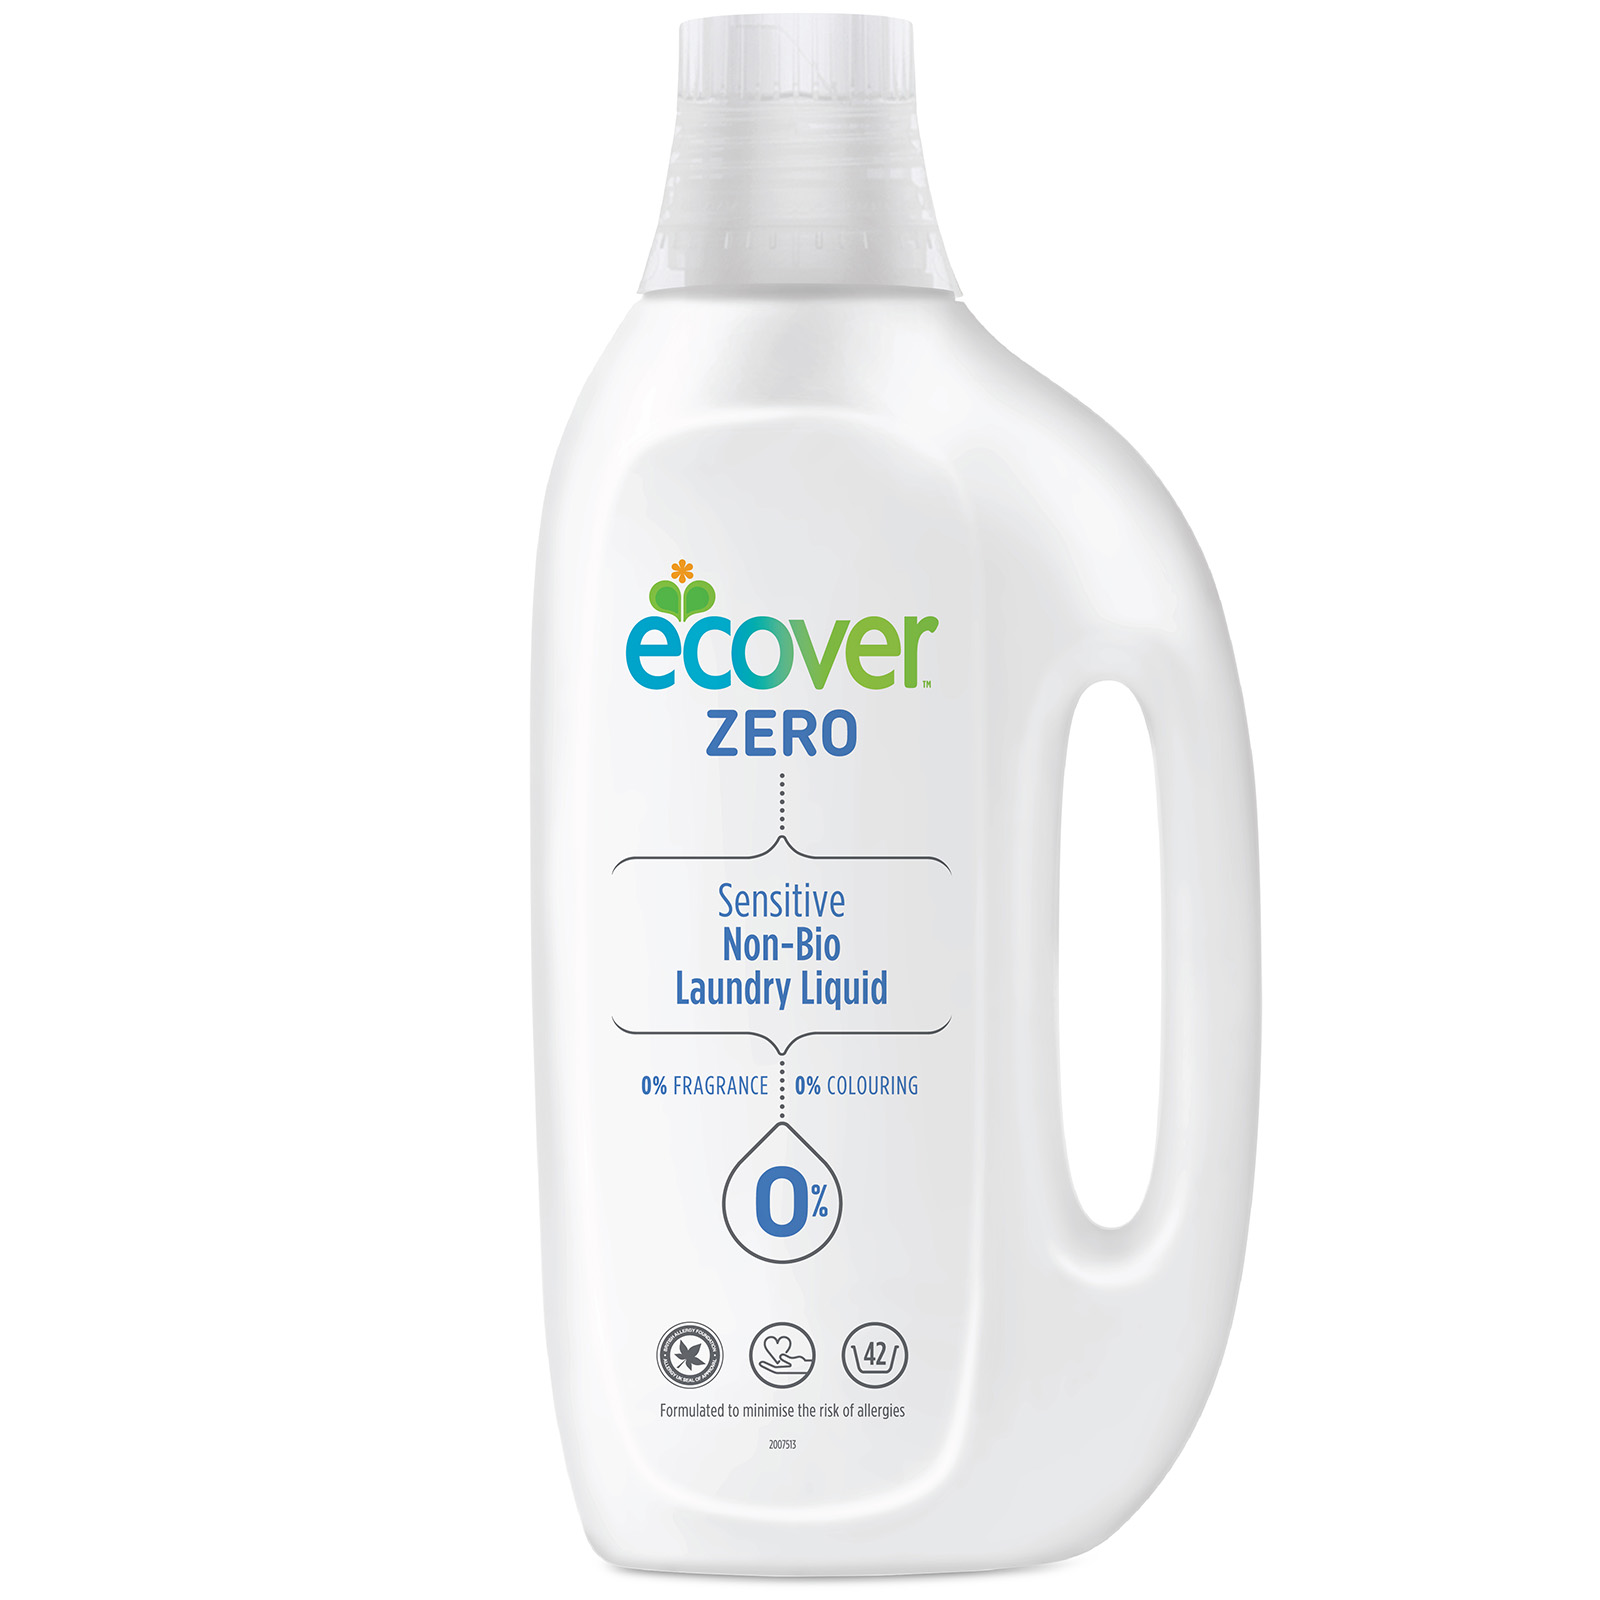 baby-fair Ecover ZERO Laundry Liquid (1.5L)